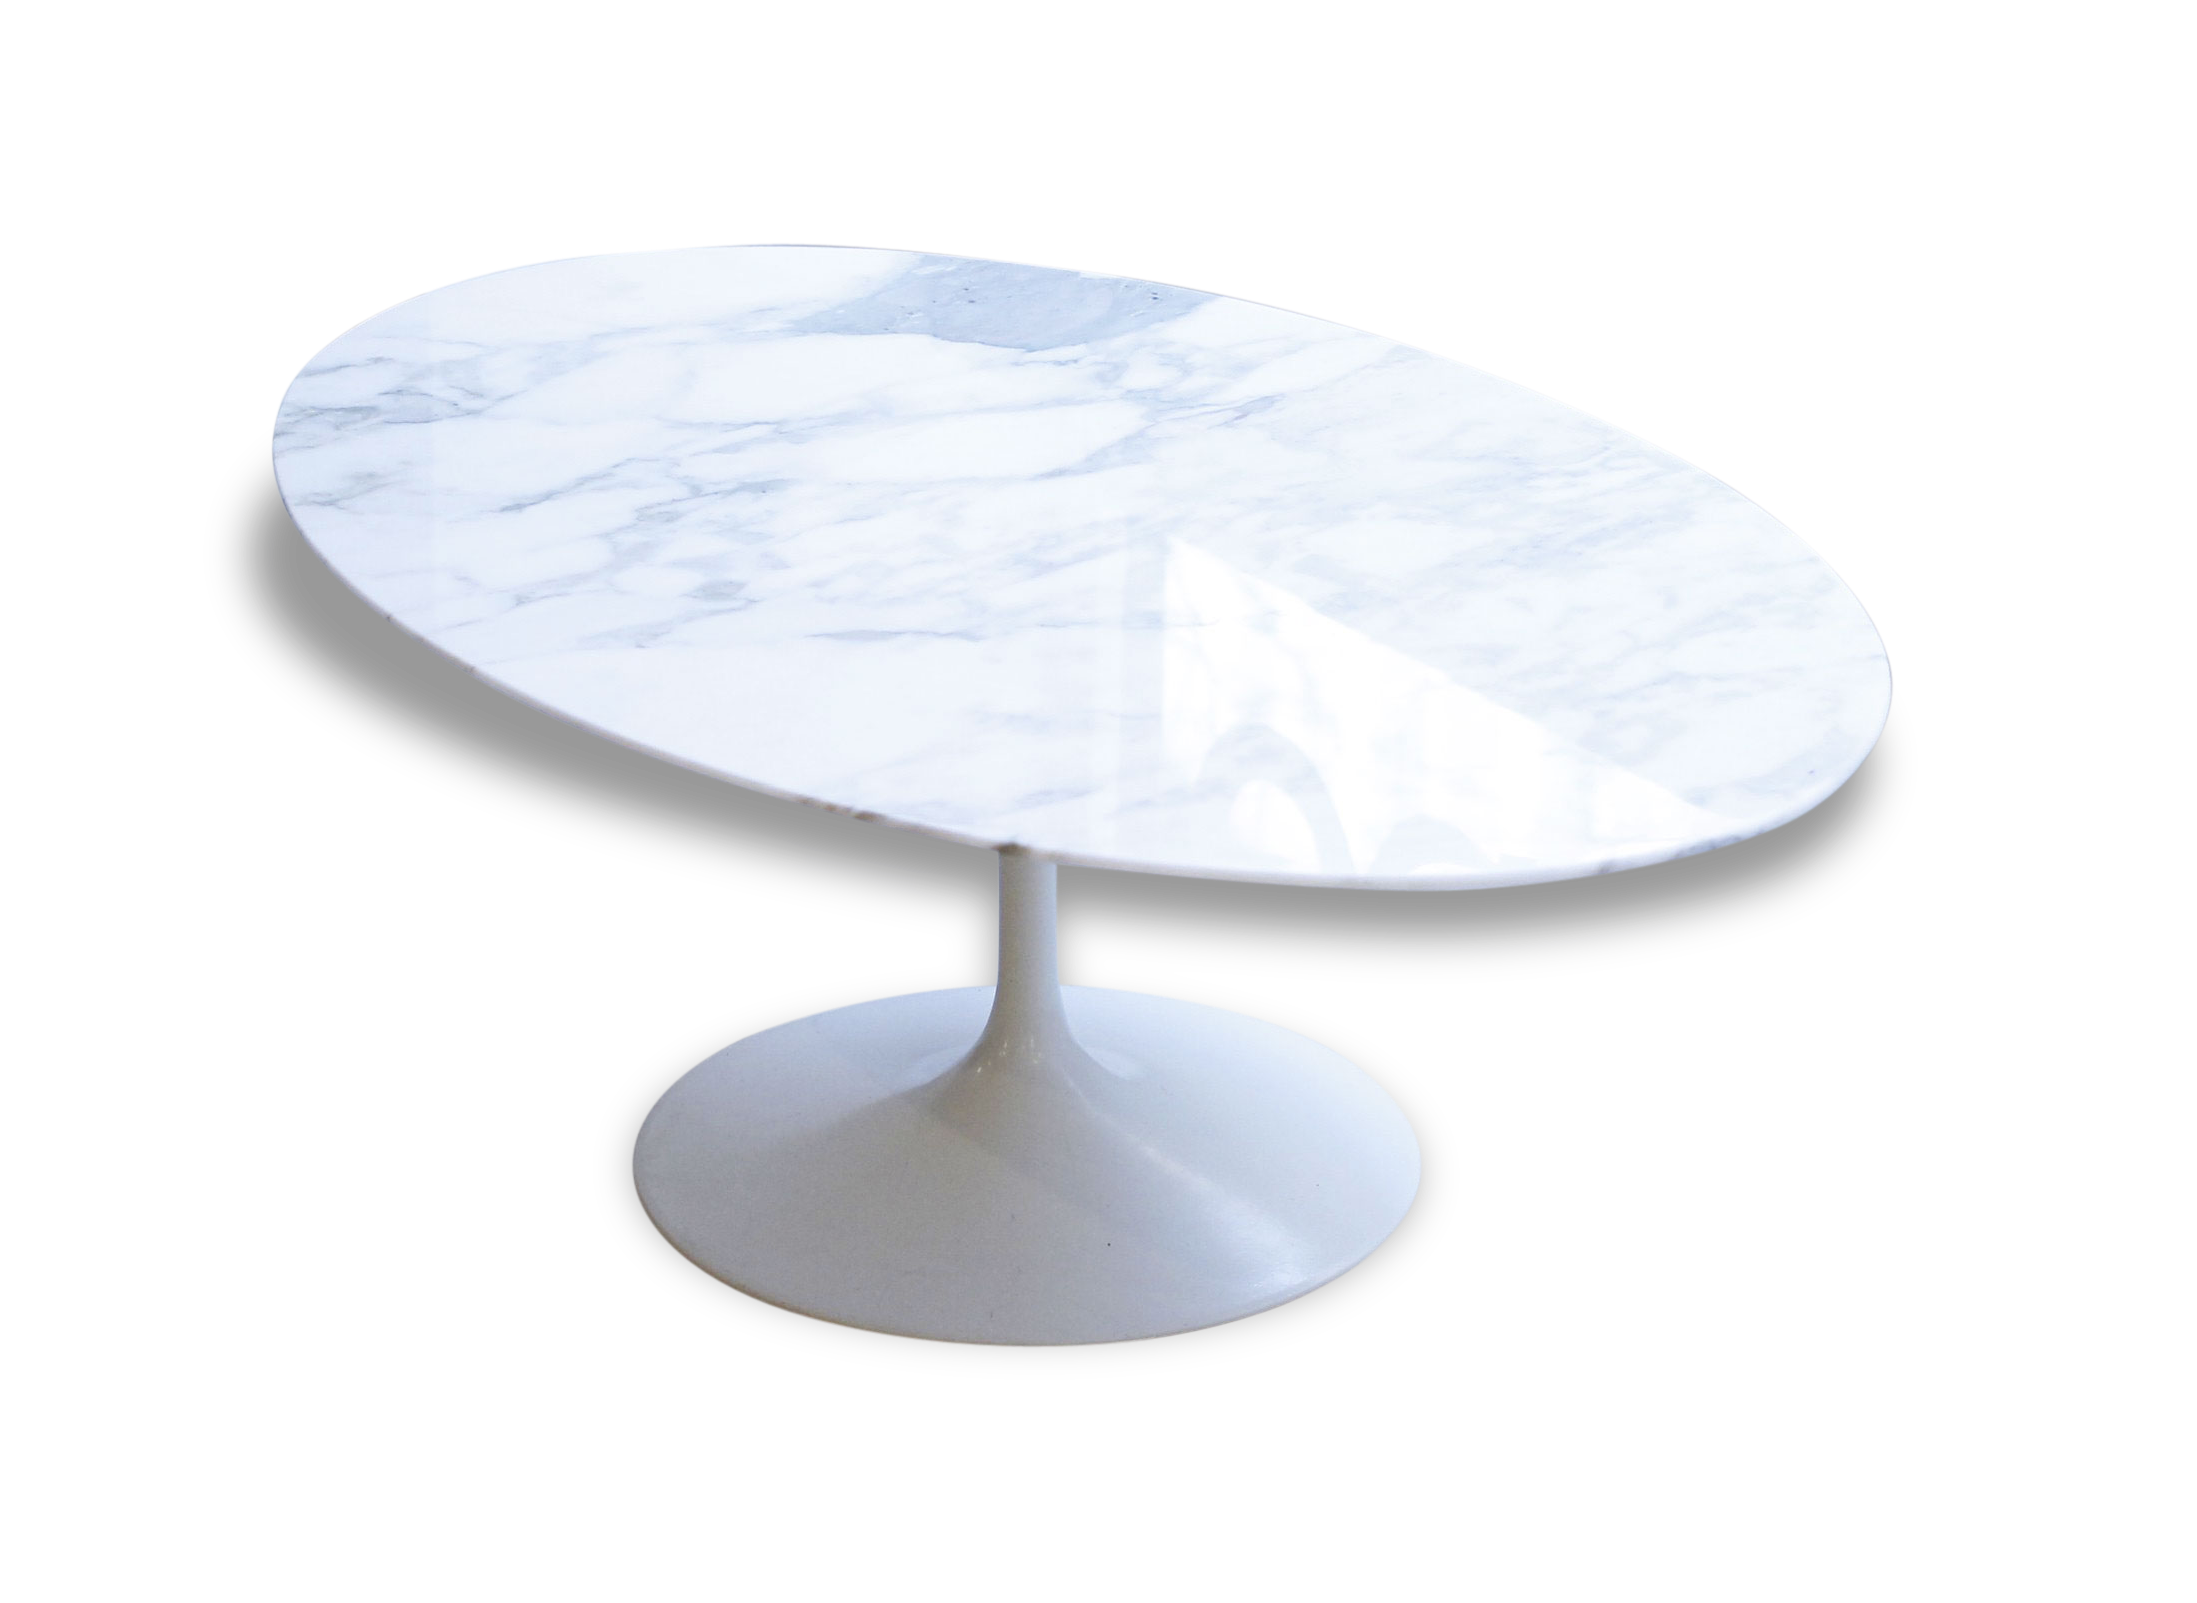 Table knoll marbre beautiful table marbre blanc on decoration d interieur moderne knoll - Table knoll ovale marbre blanc ...